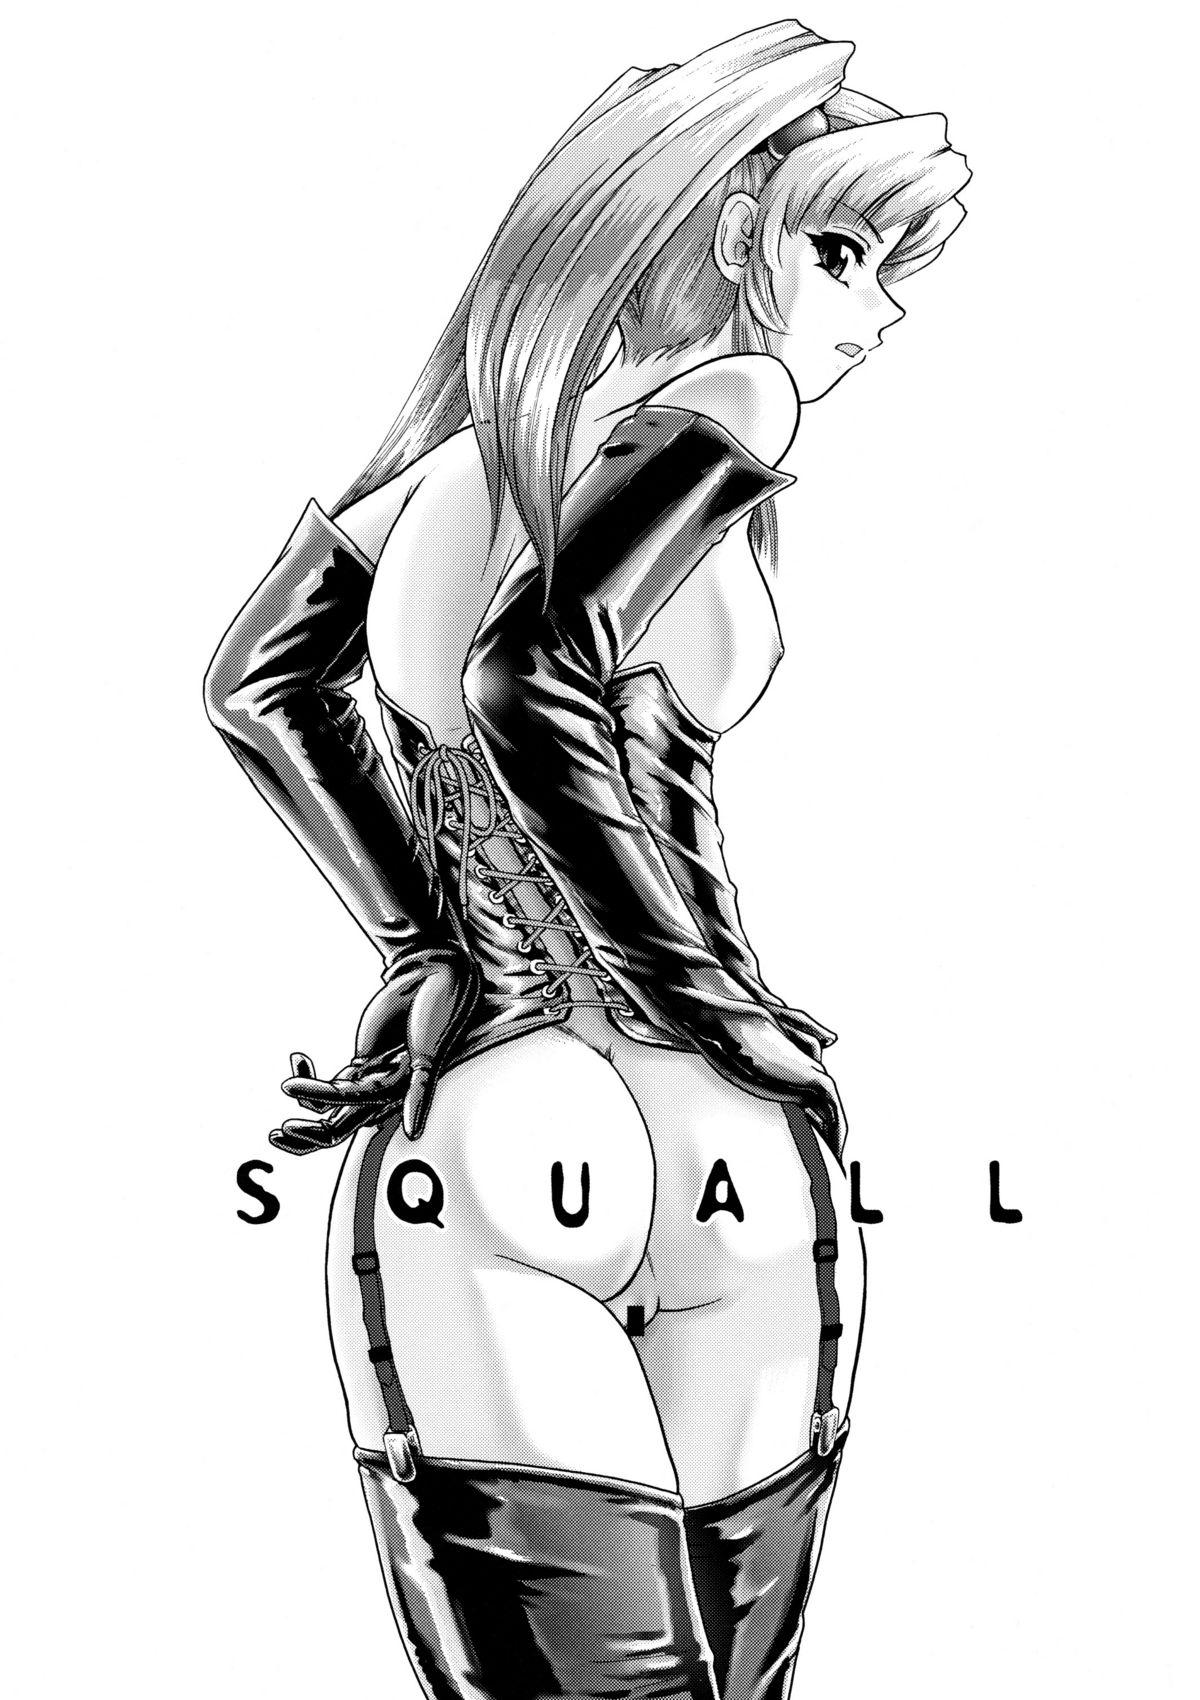 Squall 1